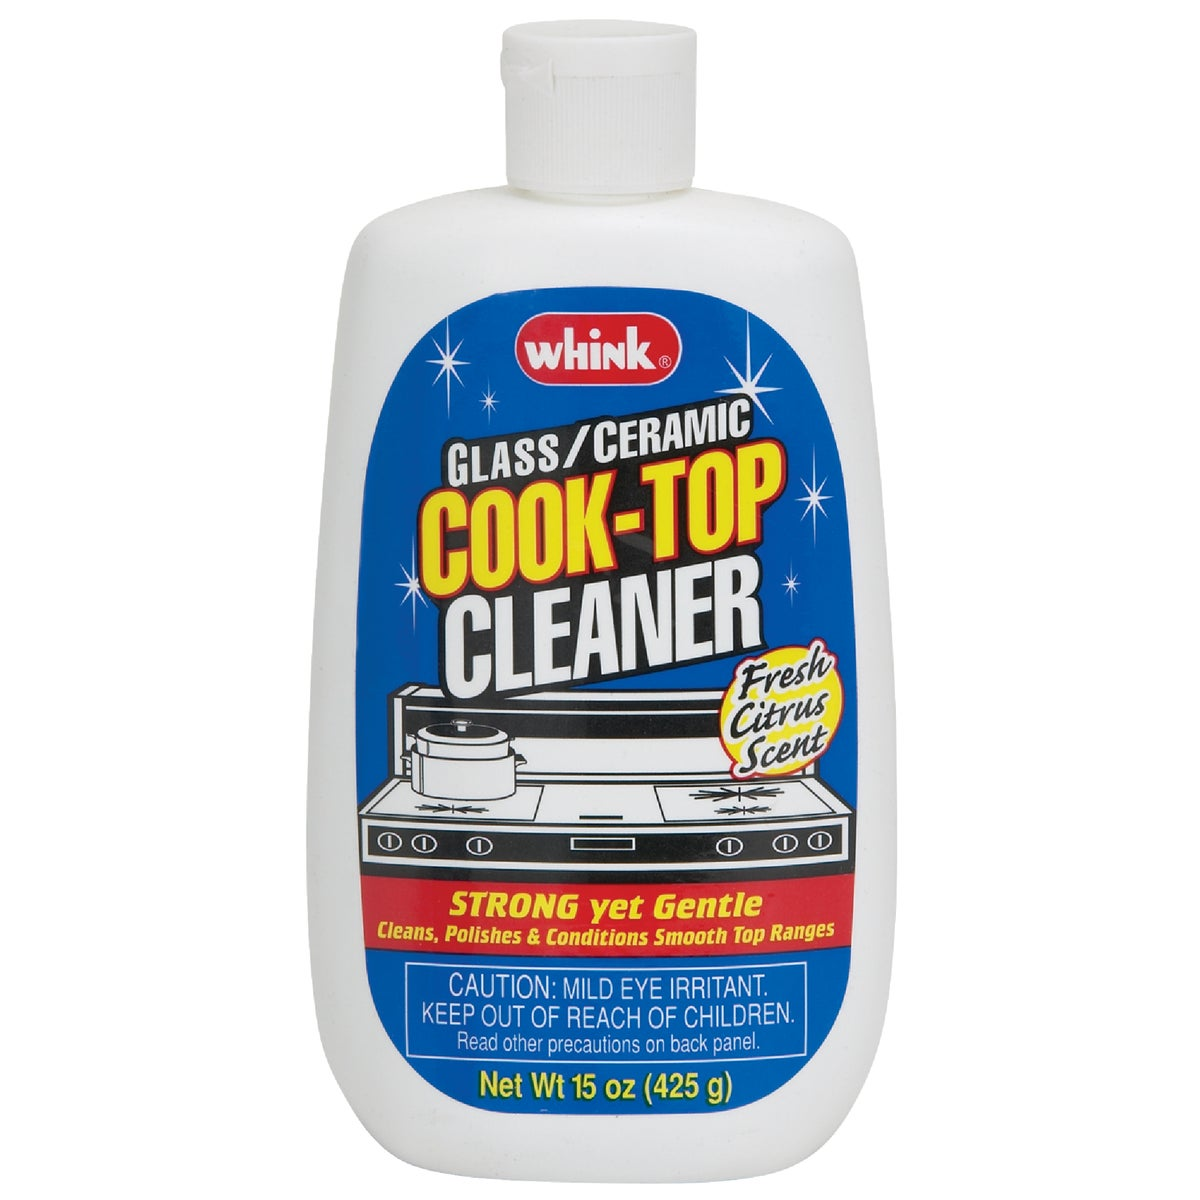 Glass Cookware And Cook-Top Cleaner